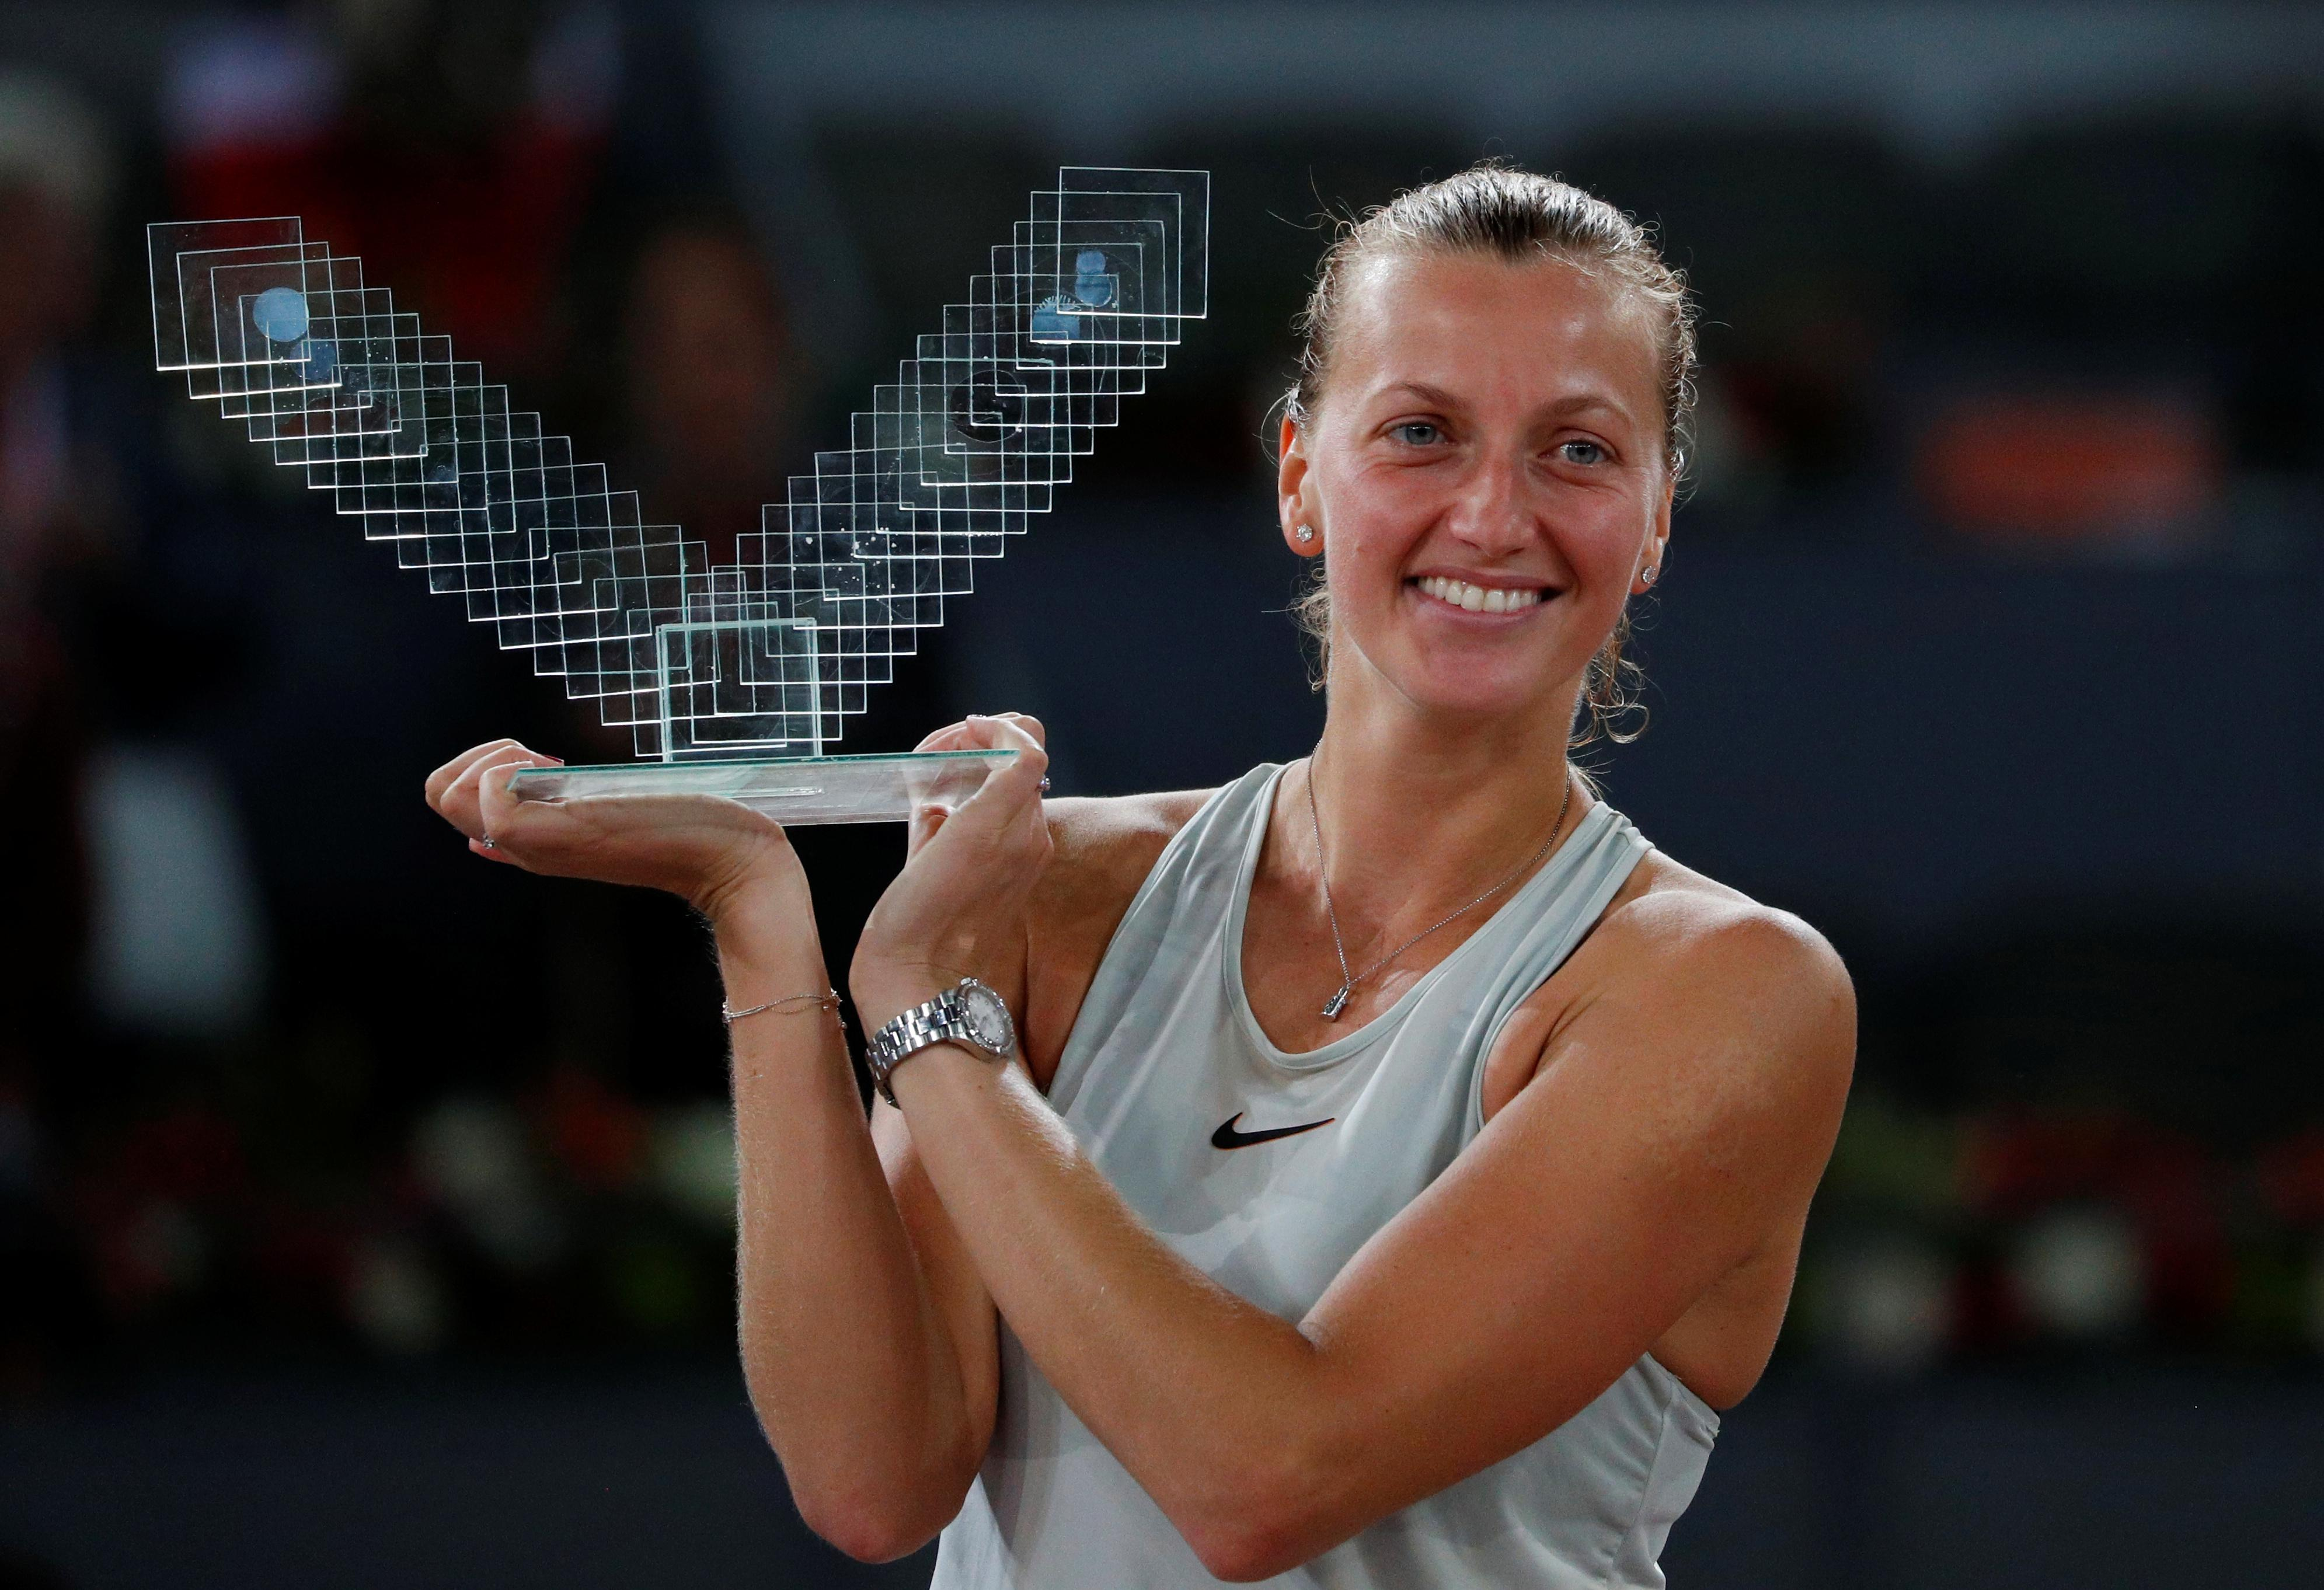 Tennis: Kvitova hails 'crazy' year following knife attack